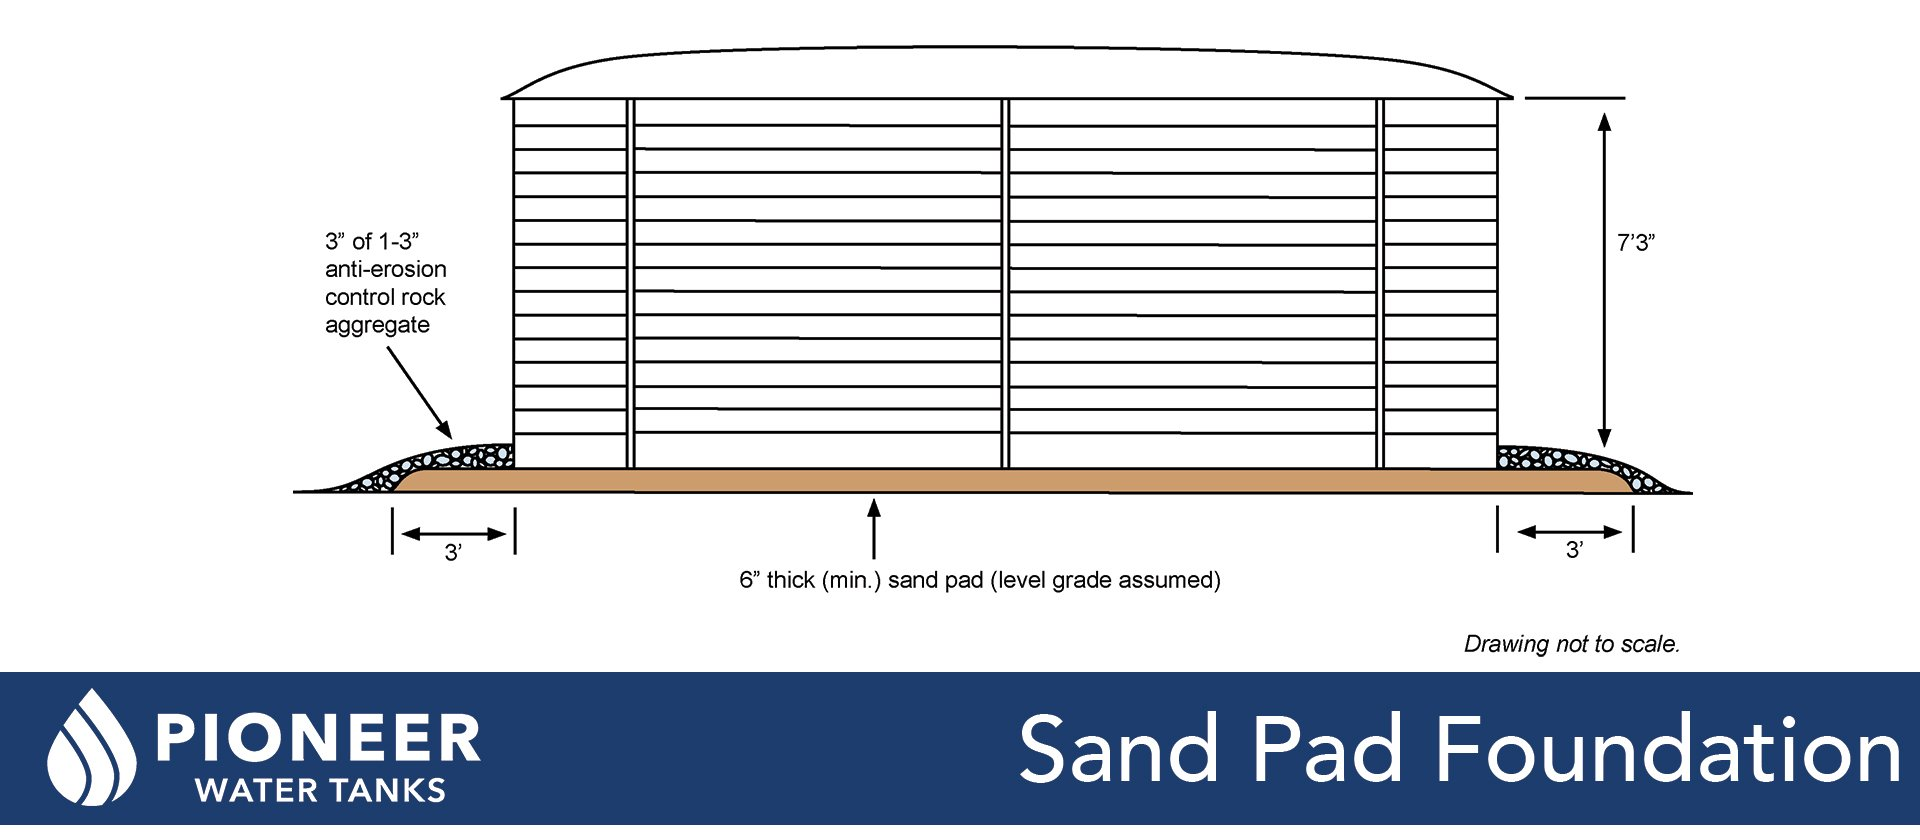 Pioneer Water Tanks sand pad foundation